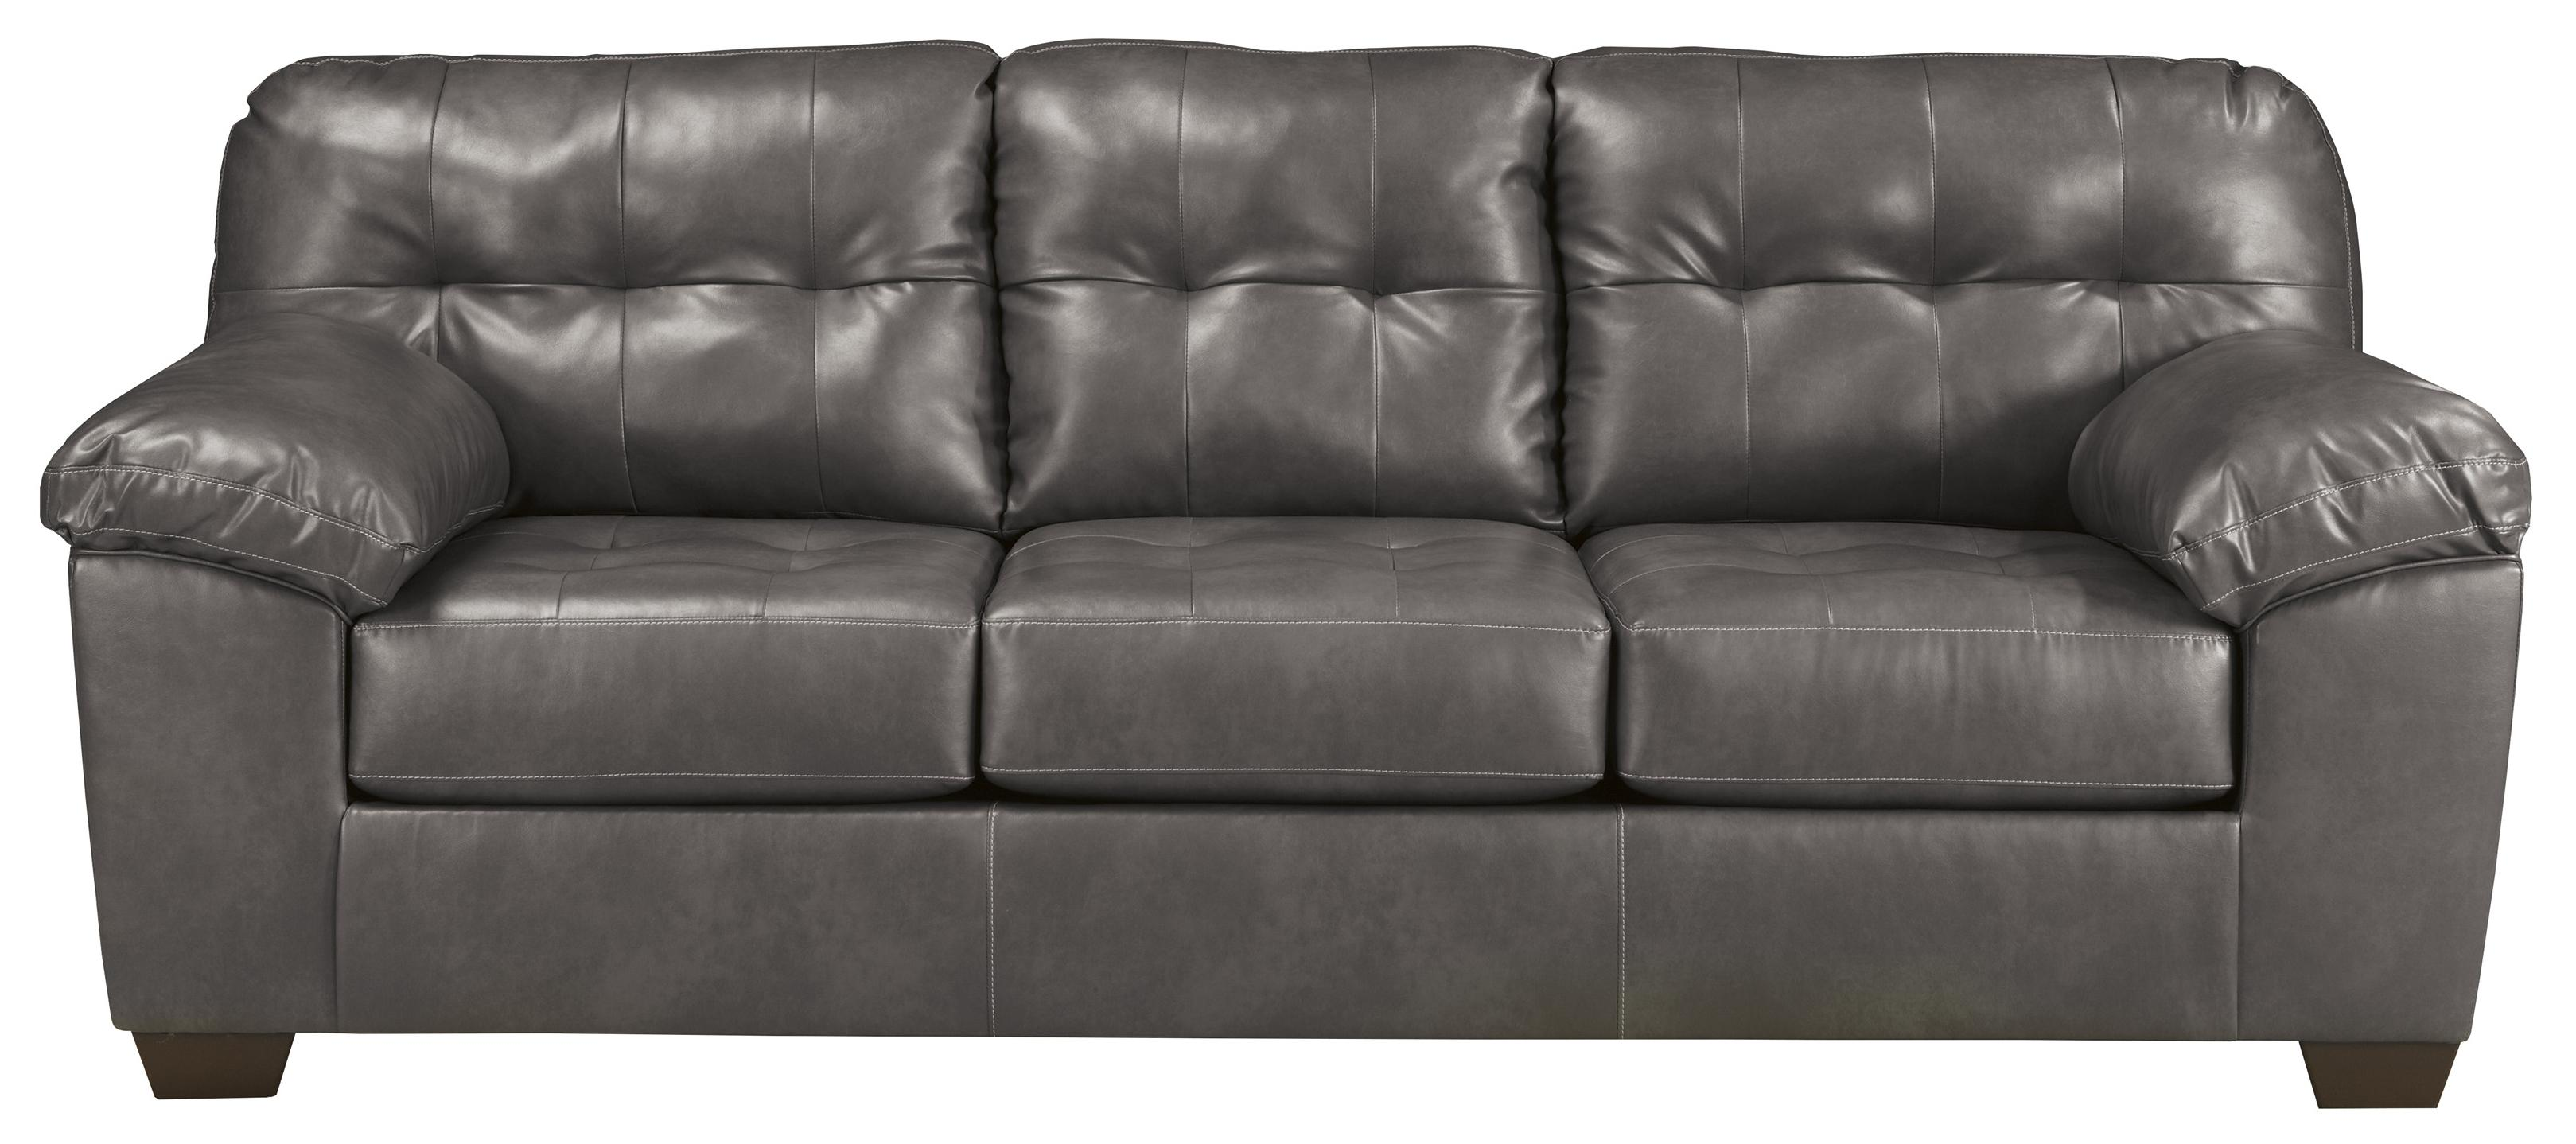 Signature Design by Ashley Alliston DuraBlend® - Gray Queen Sofa Sleeper - Item Number: 2010239